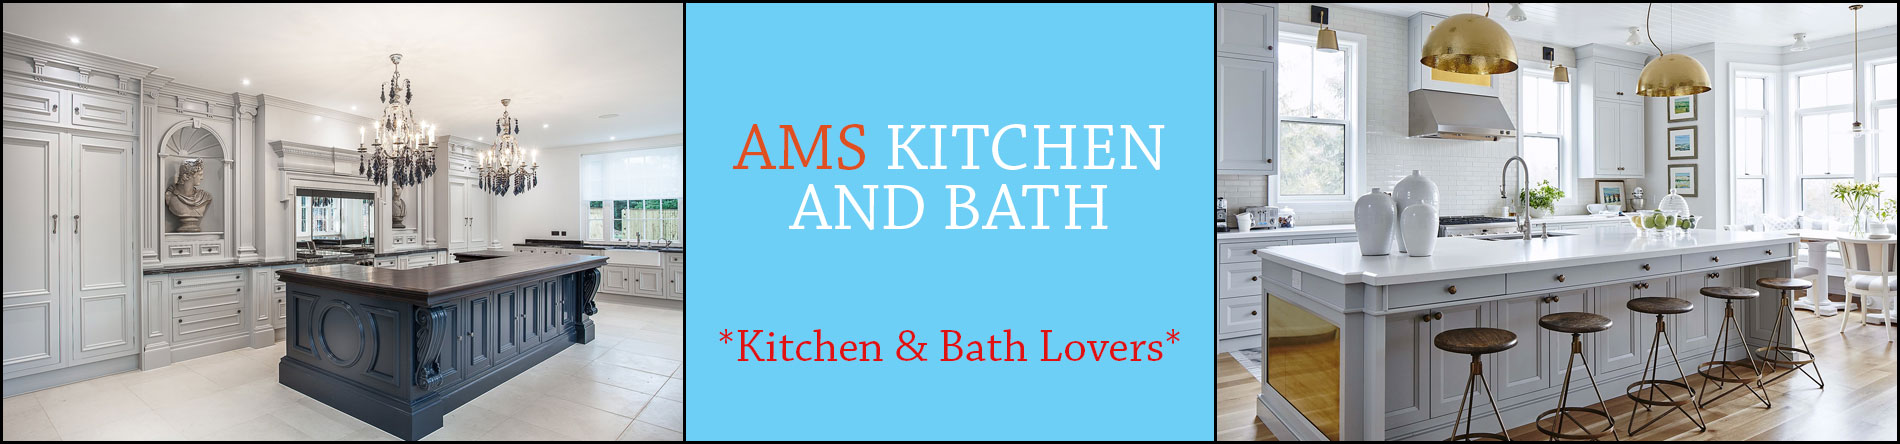 AMS Kitchen and Bath is a Bathroom & Kitchen Remodeling Company in ...